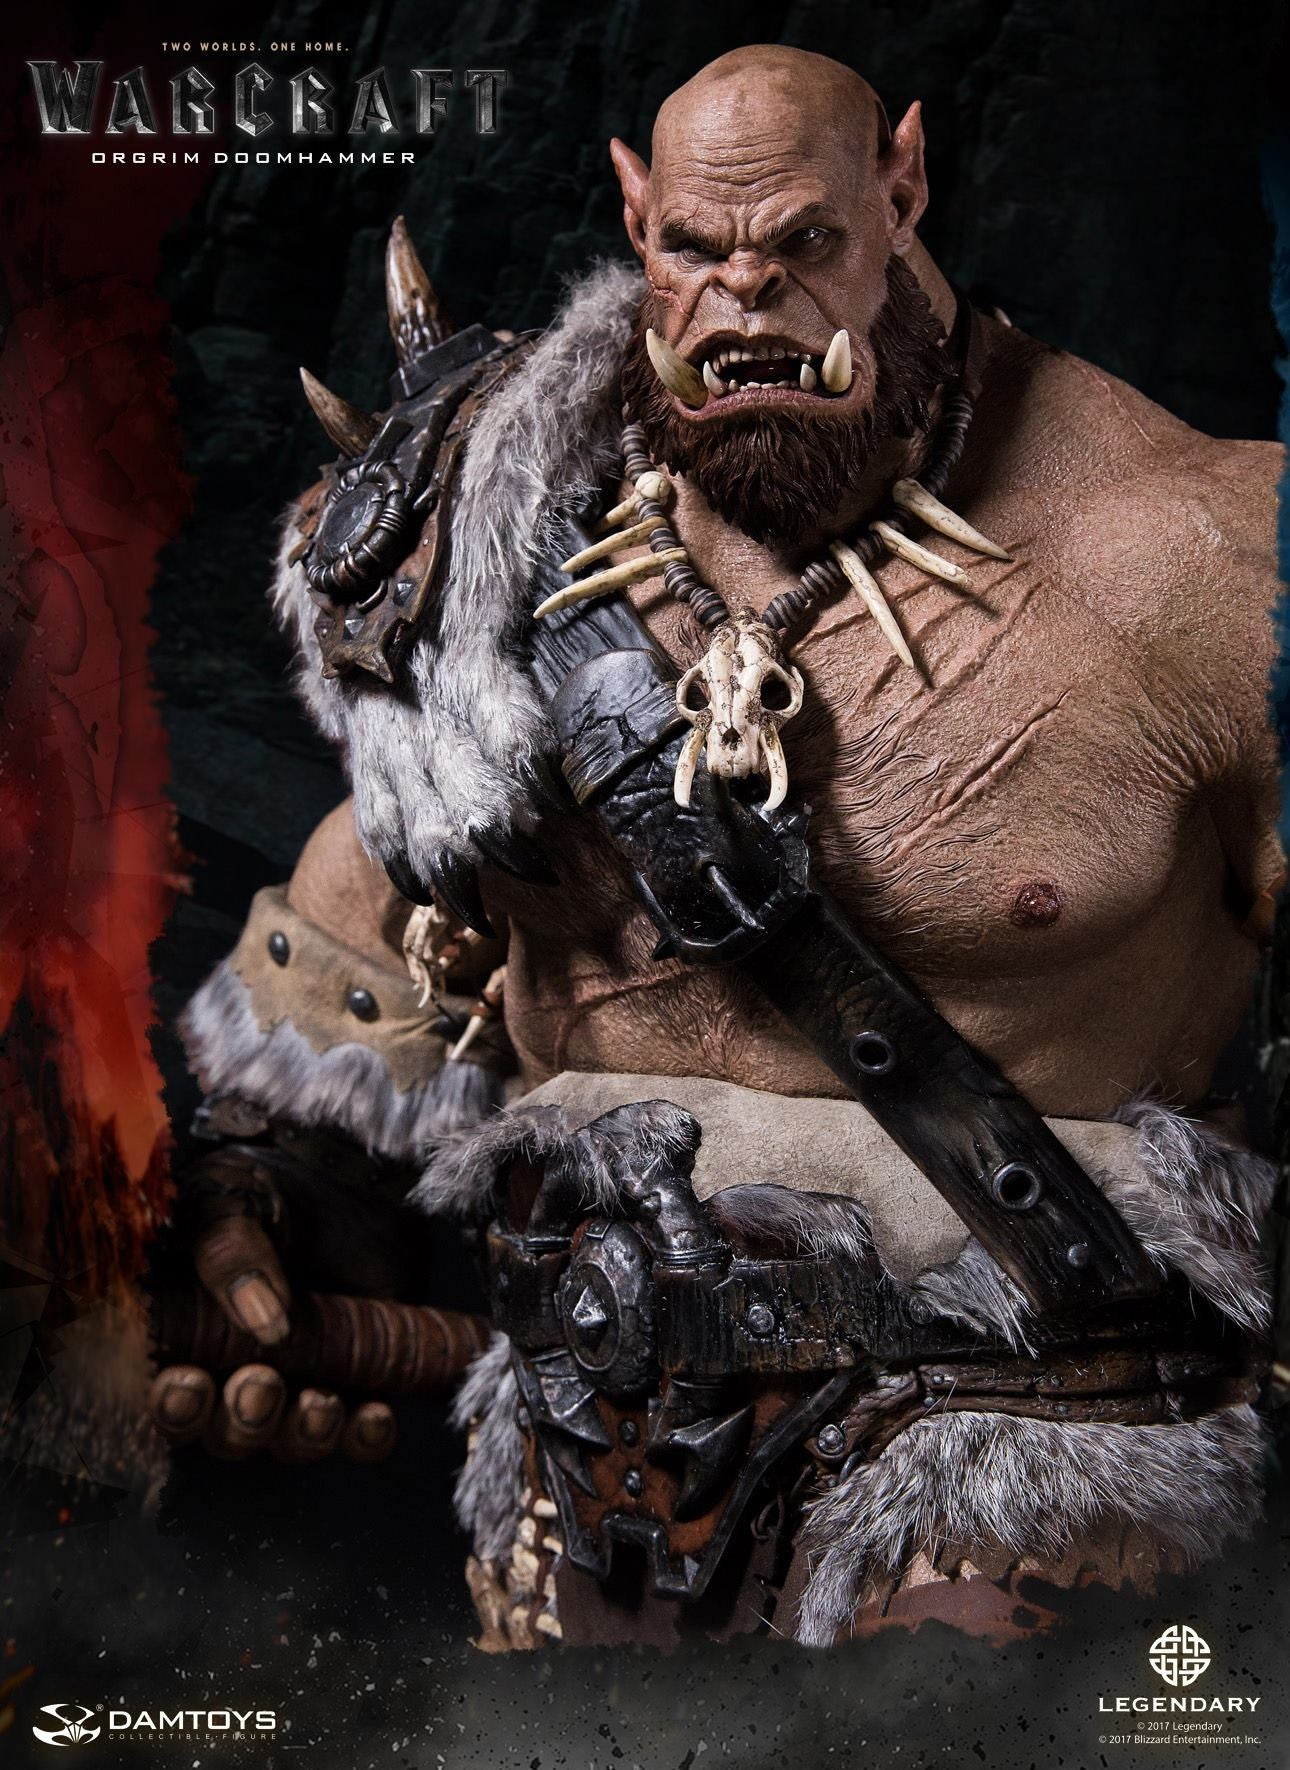 Dam Toys - DMLW02 - Epic Series - Warcraft - Orgrim Doomhammer Premium Statue - Marvelous Toys - 20